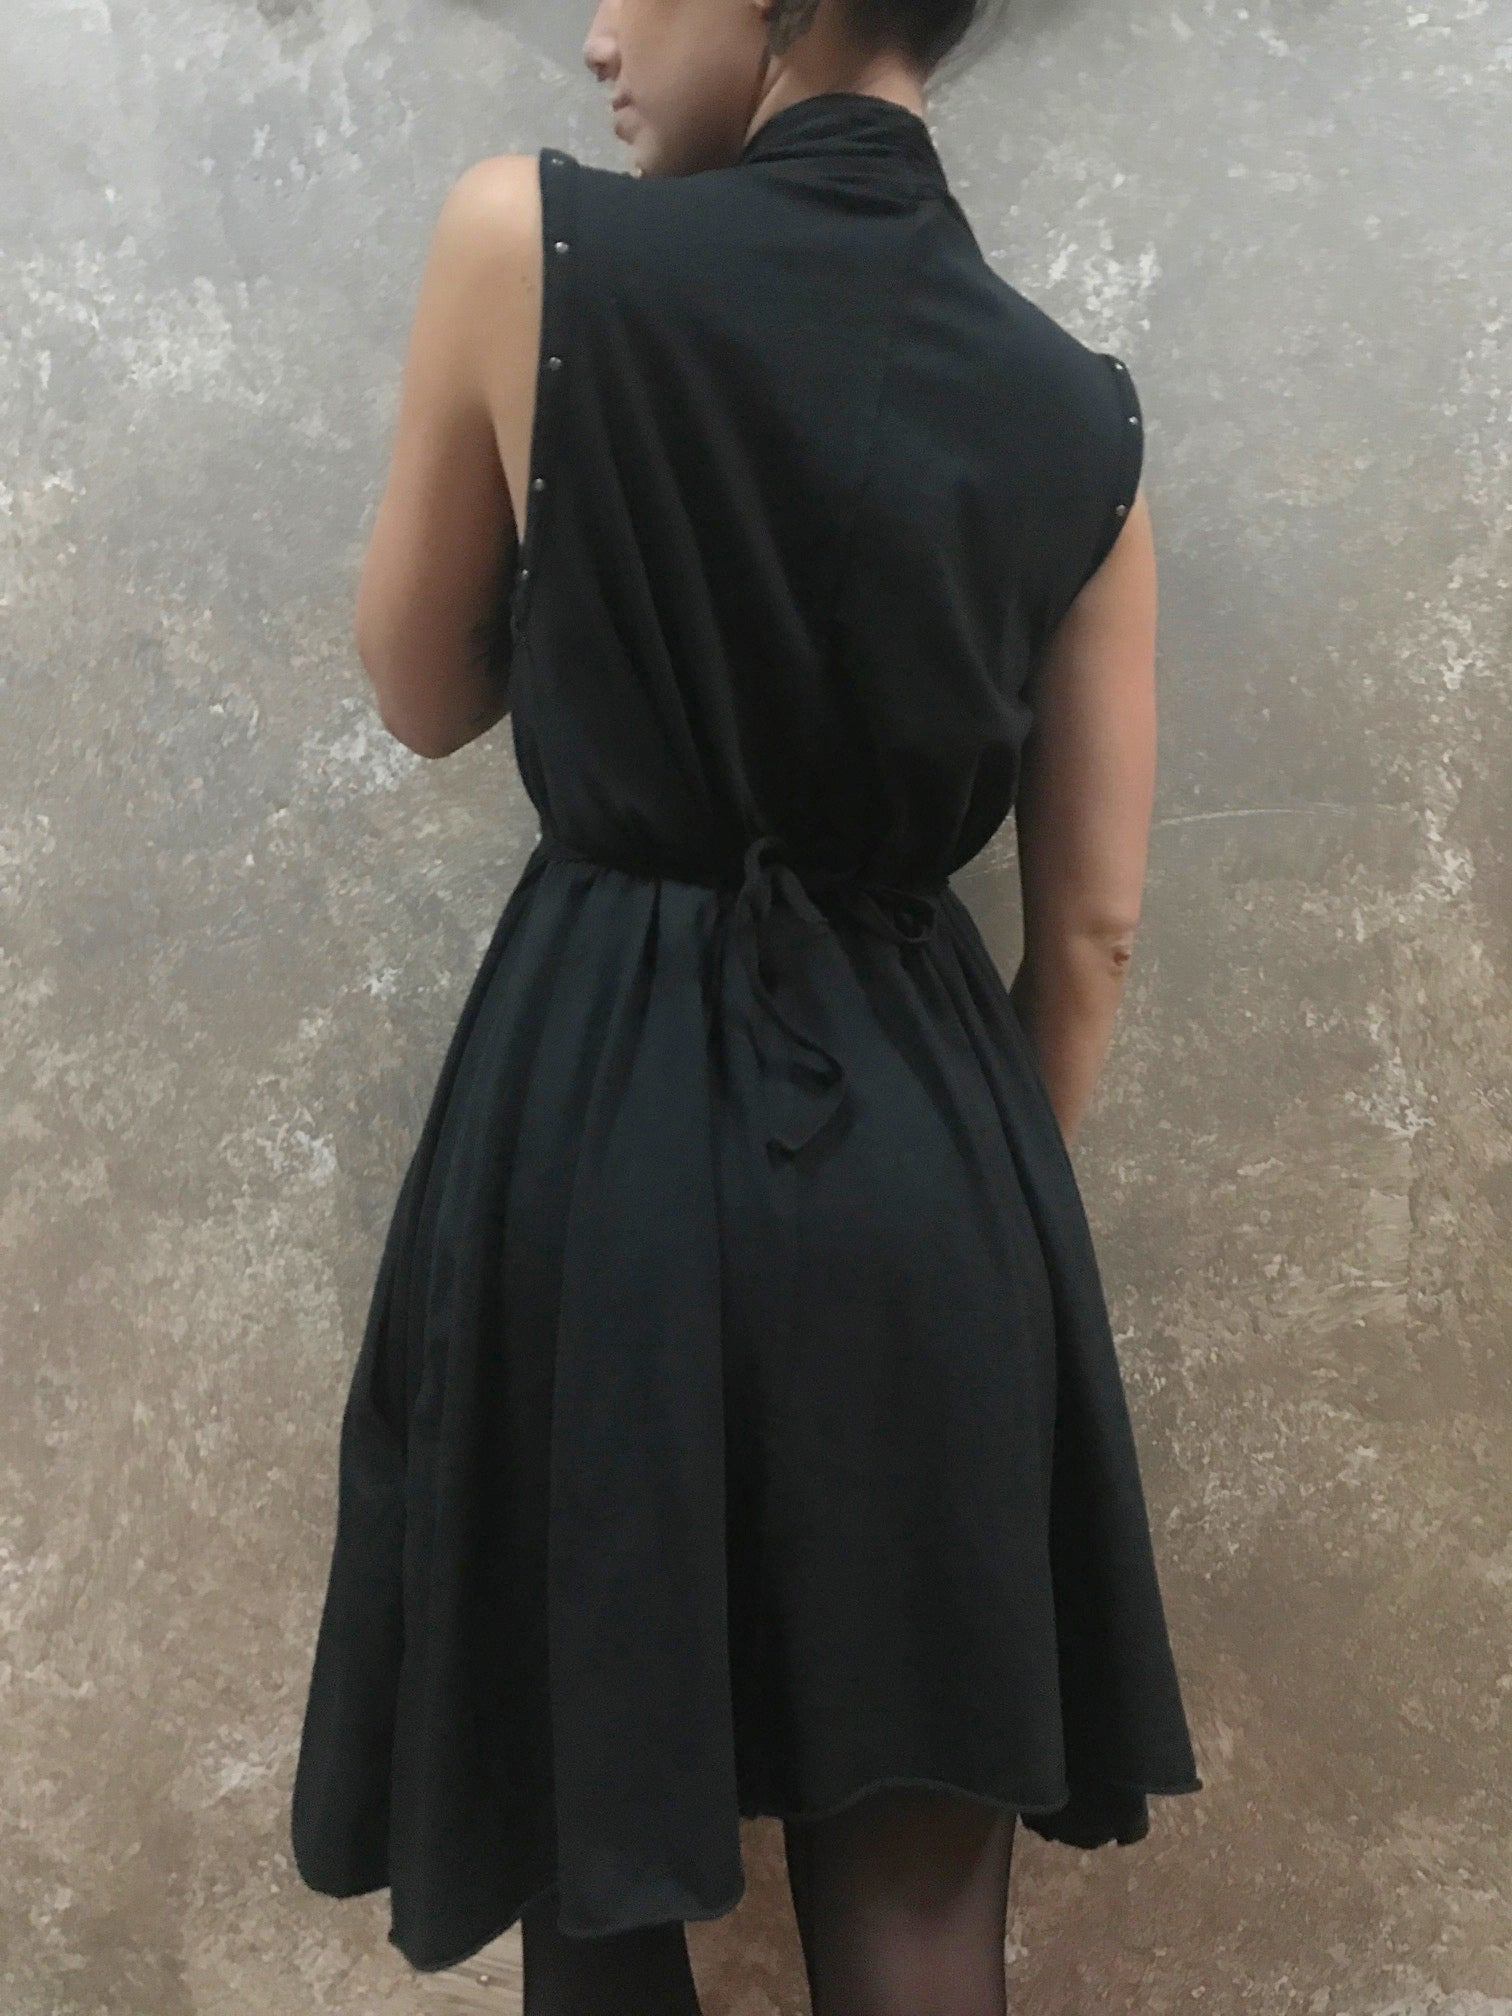 Tough Luv Goddess Dress Black w/ Studs